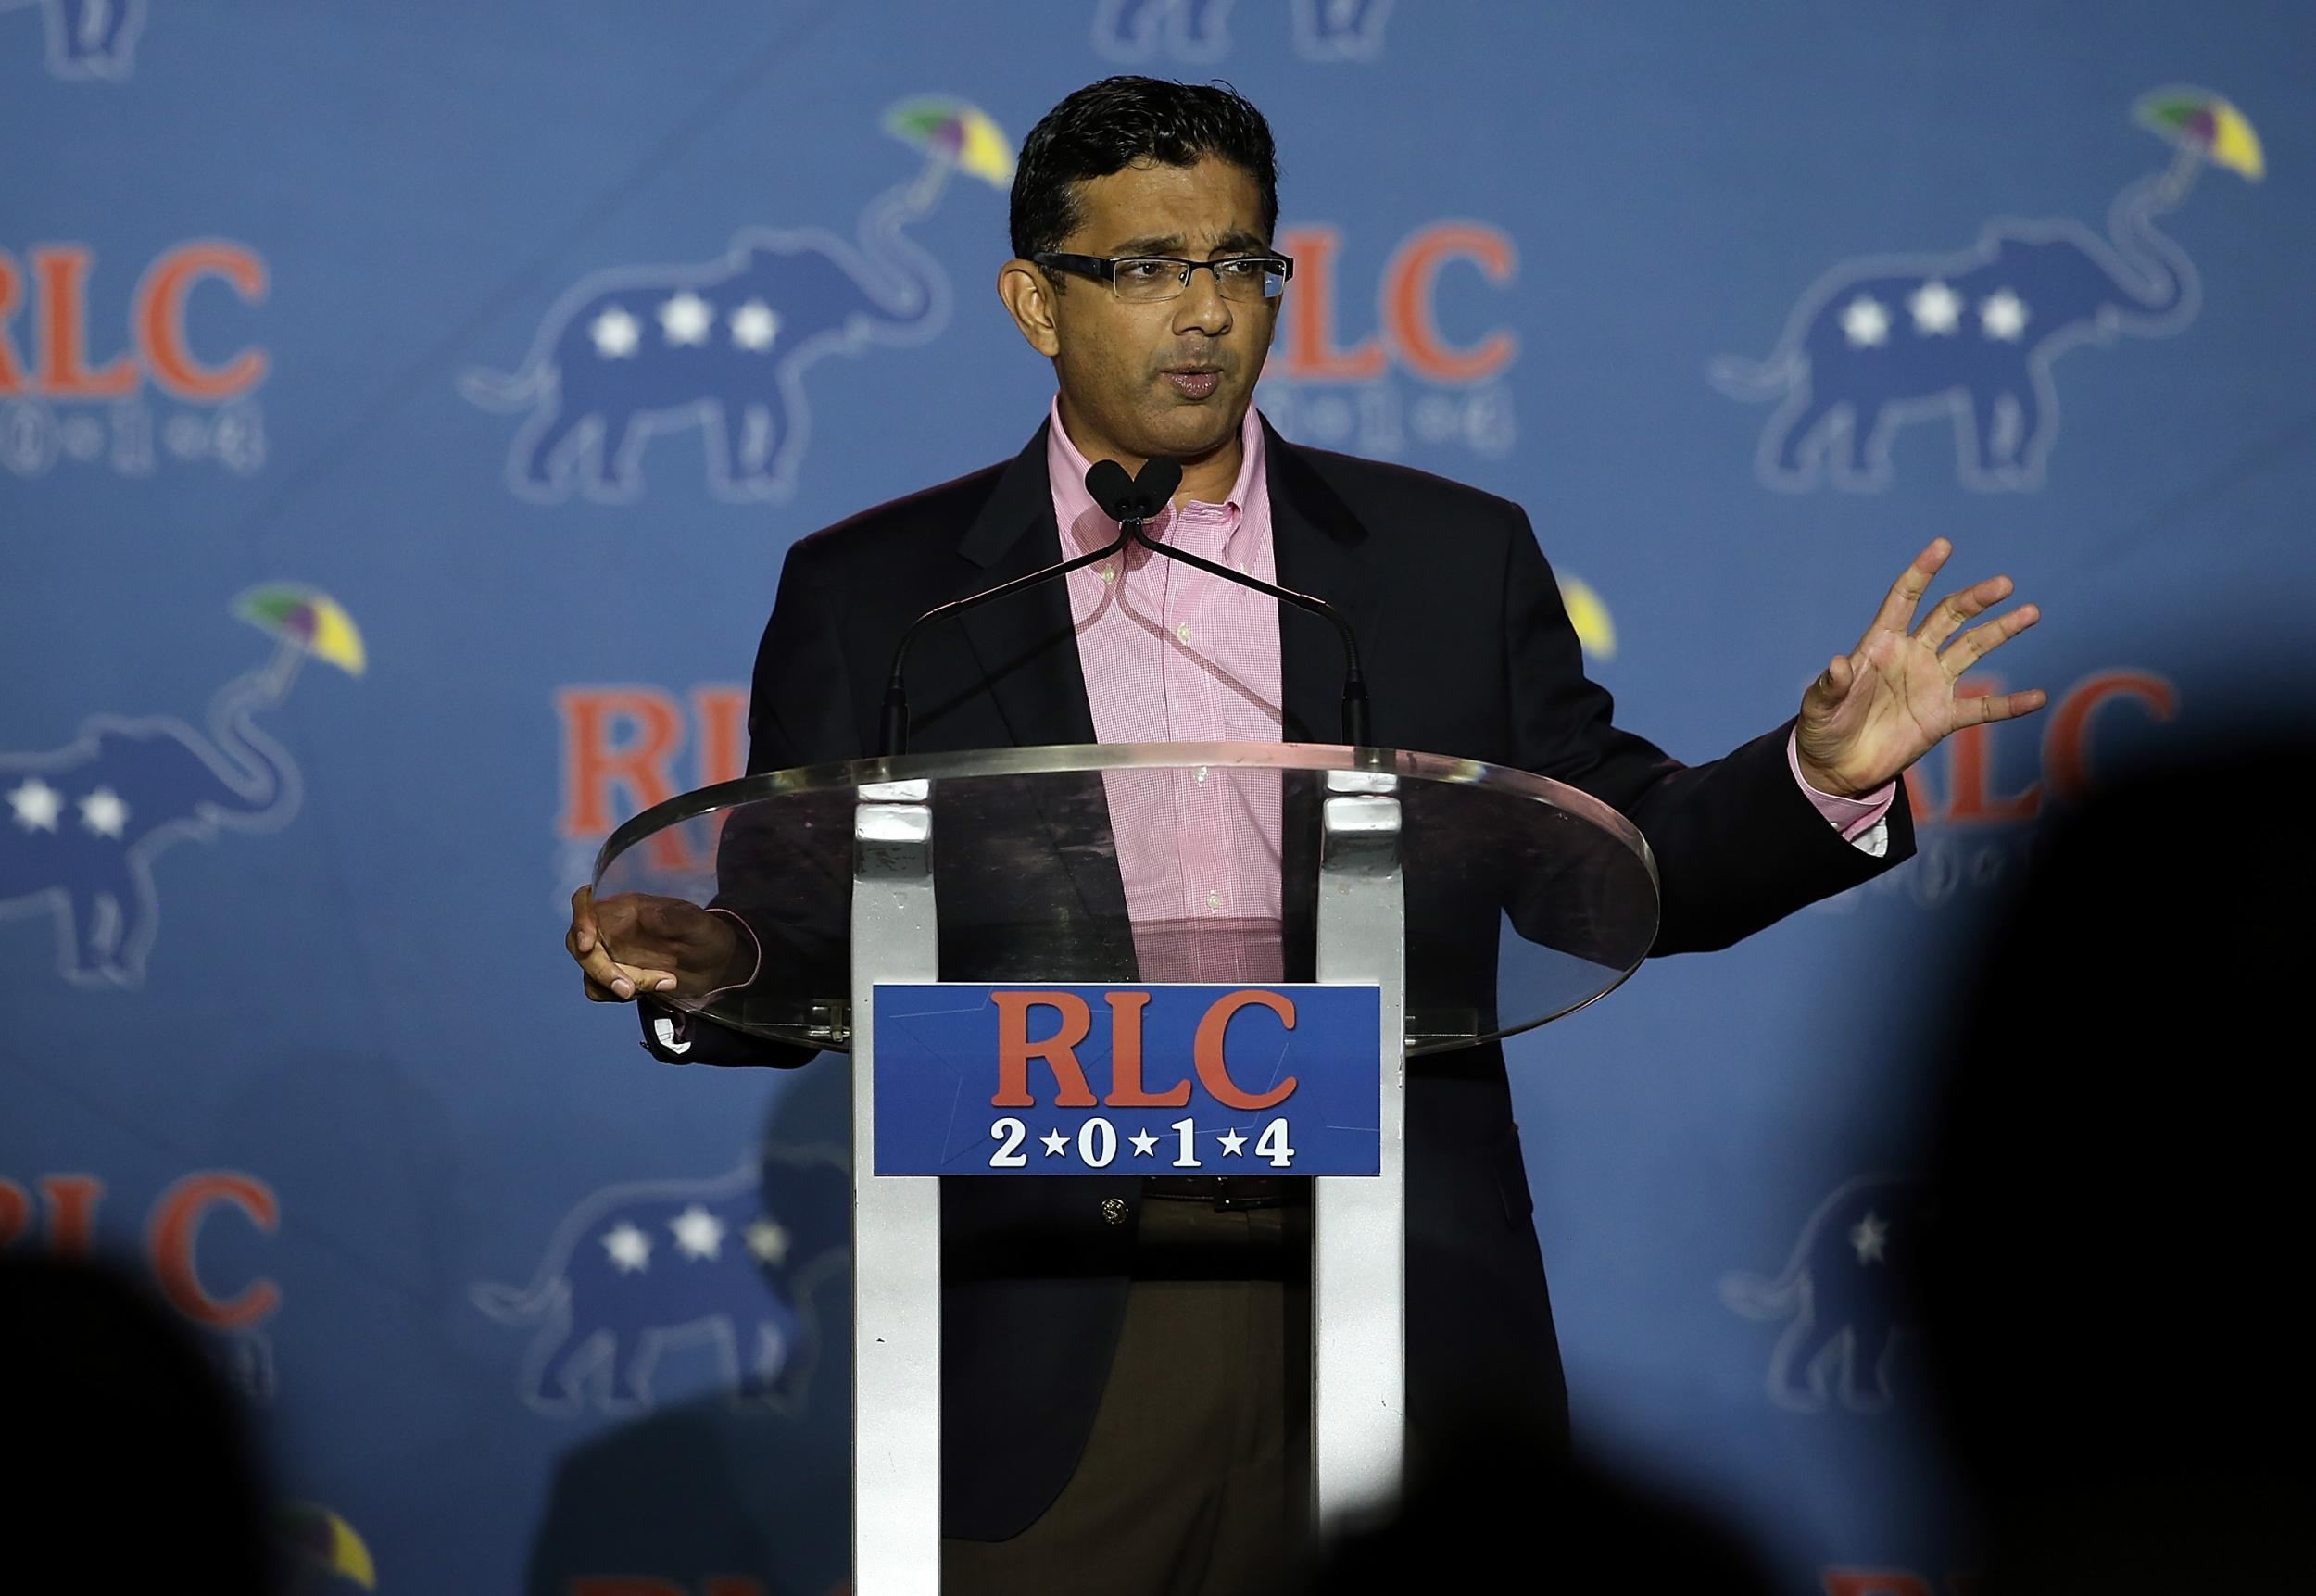 Dinesh D'Souza: Trump 'will give full pardon' to right-wing theorist for campaign finance violations